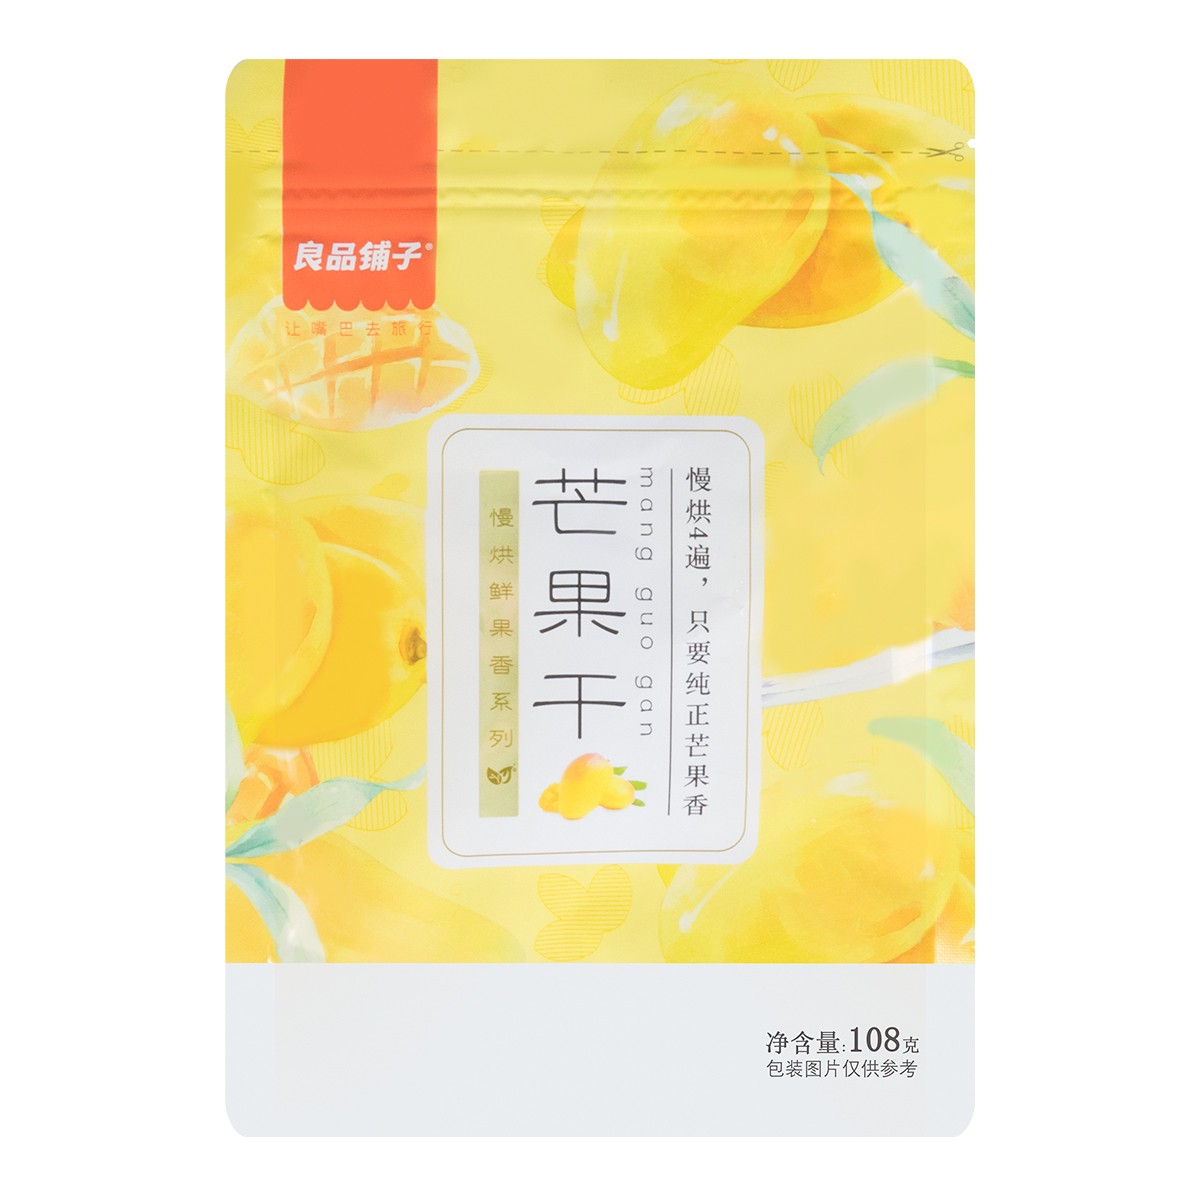 BESTORE Dried Mango 108g